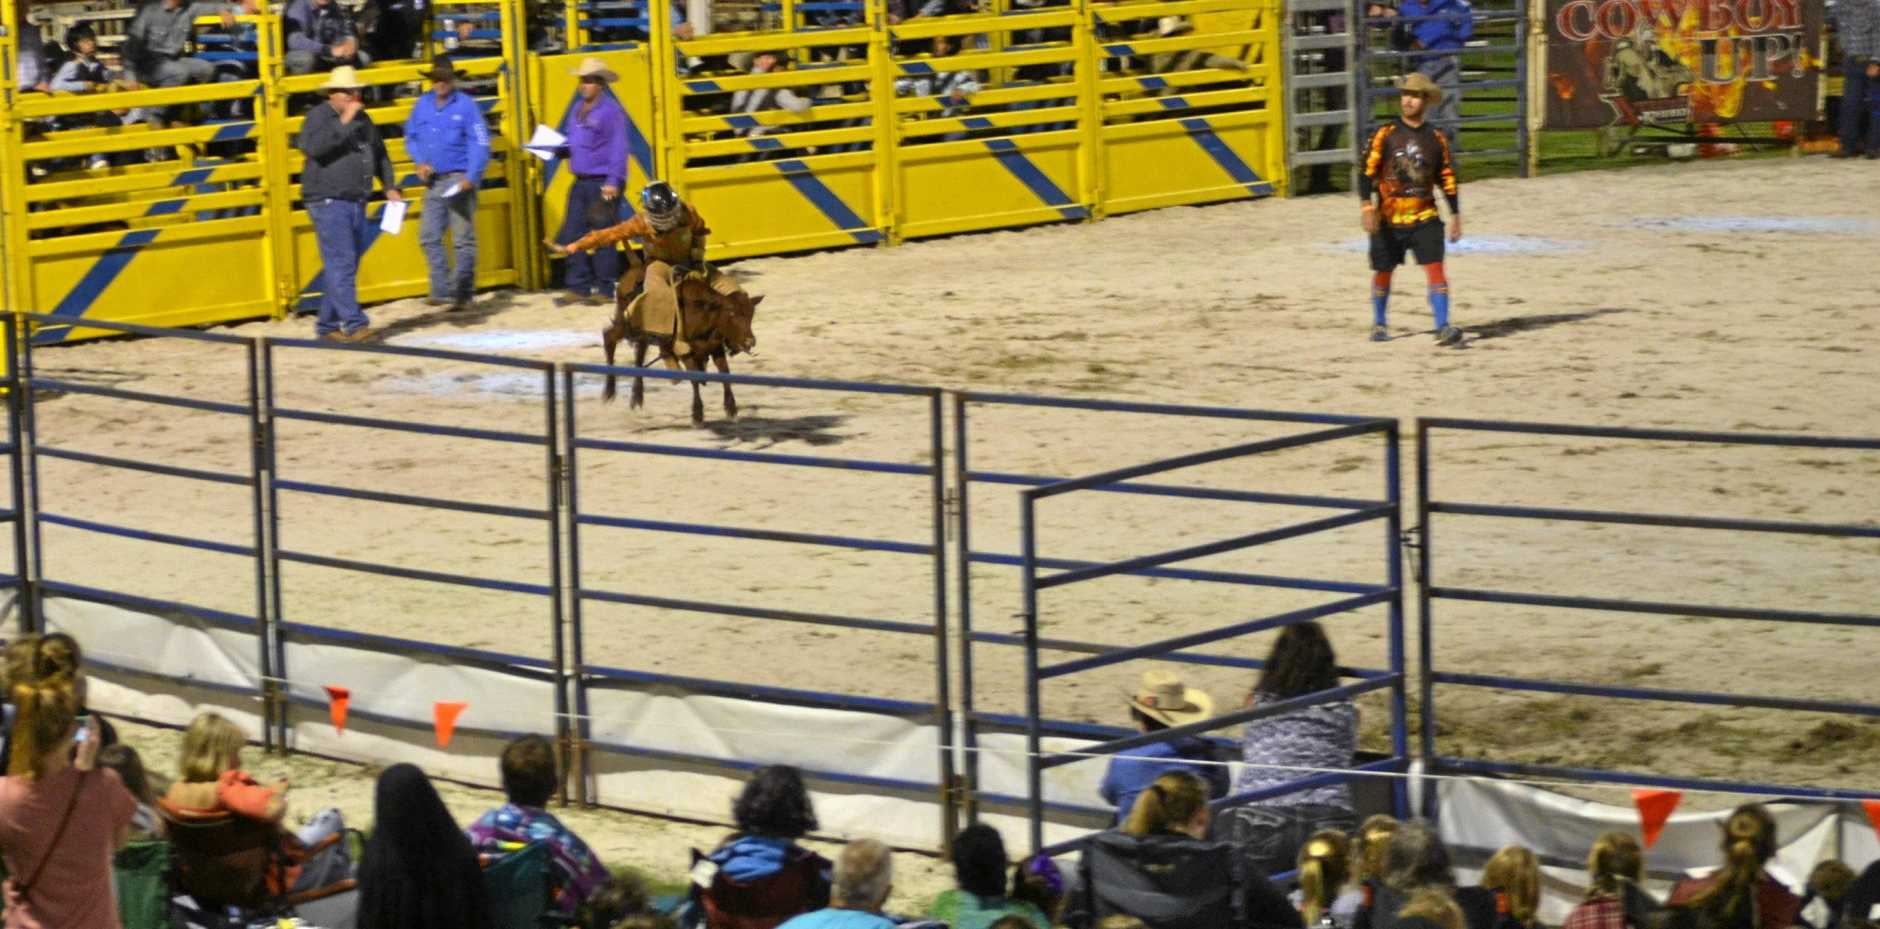 RODEO ACTION: The Pirates action will see plenty of bull riding thrills and spills.